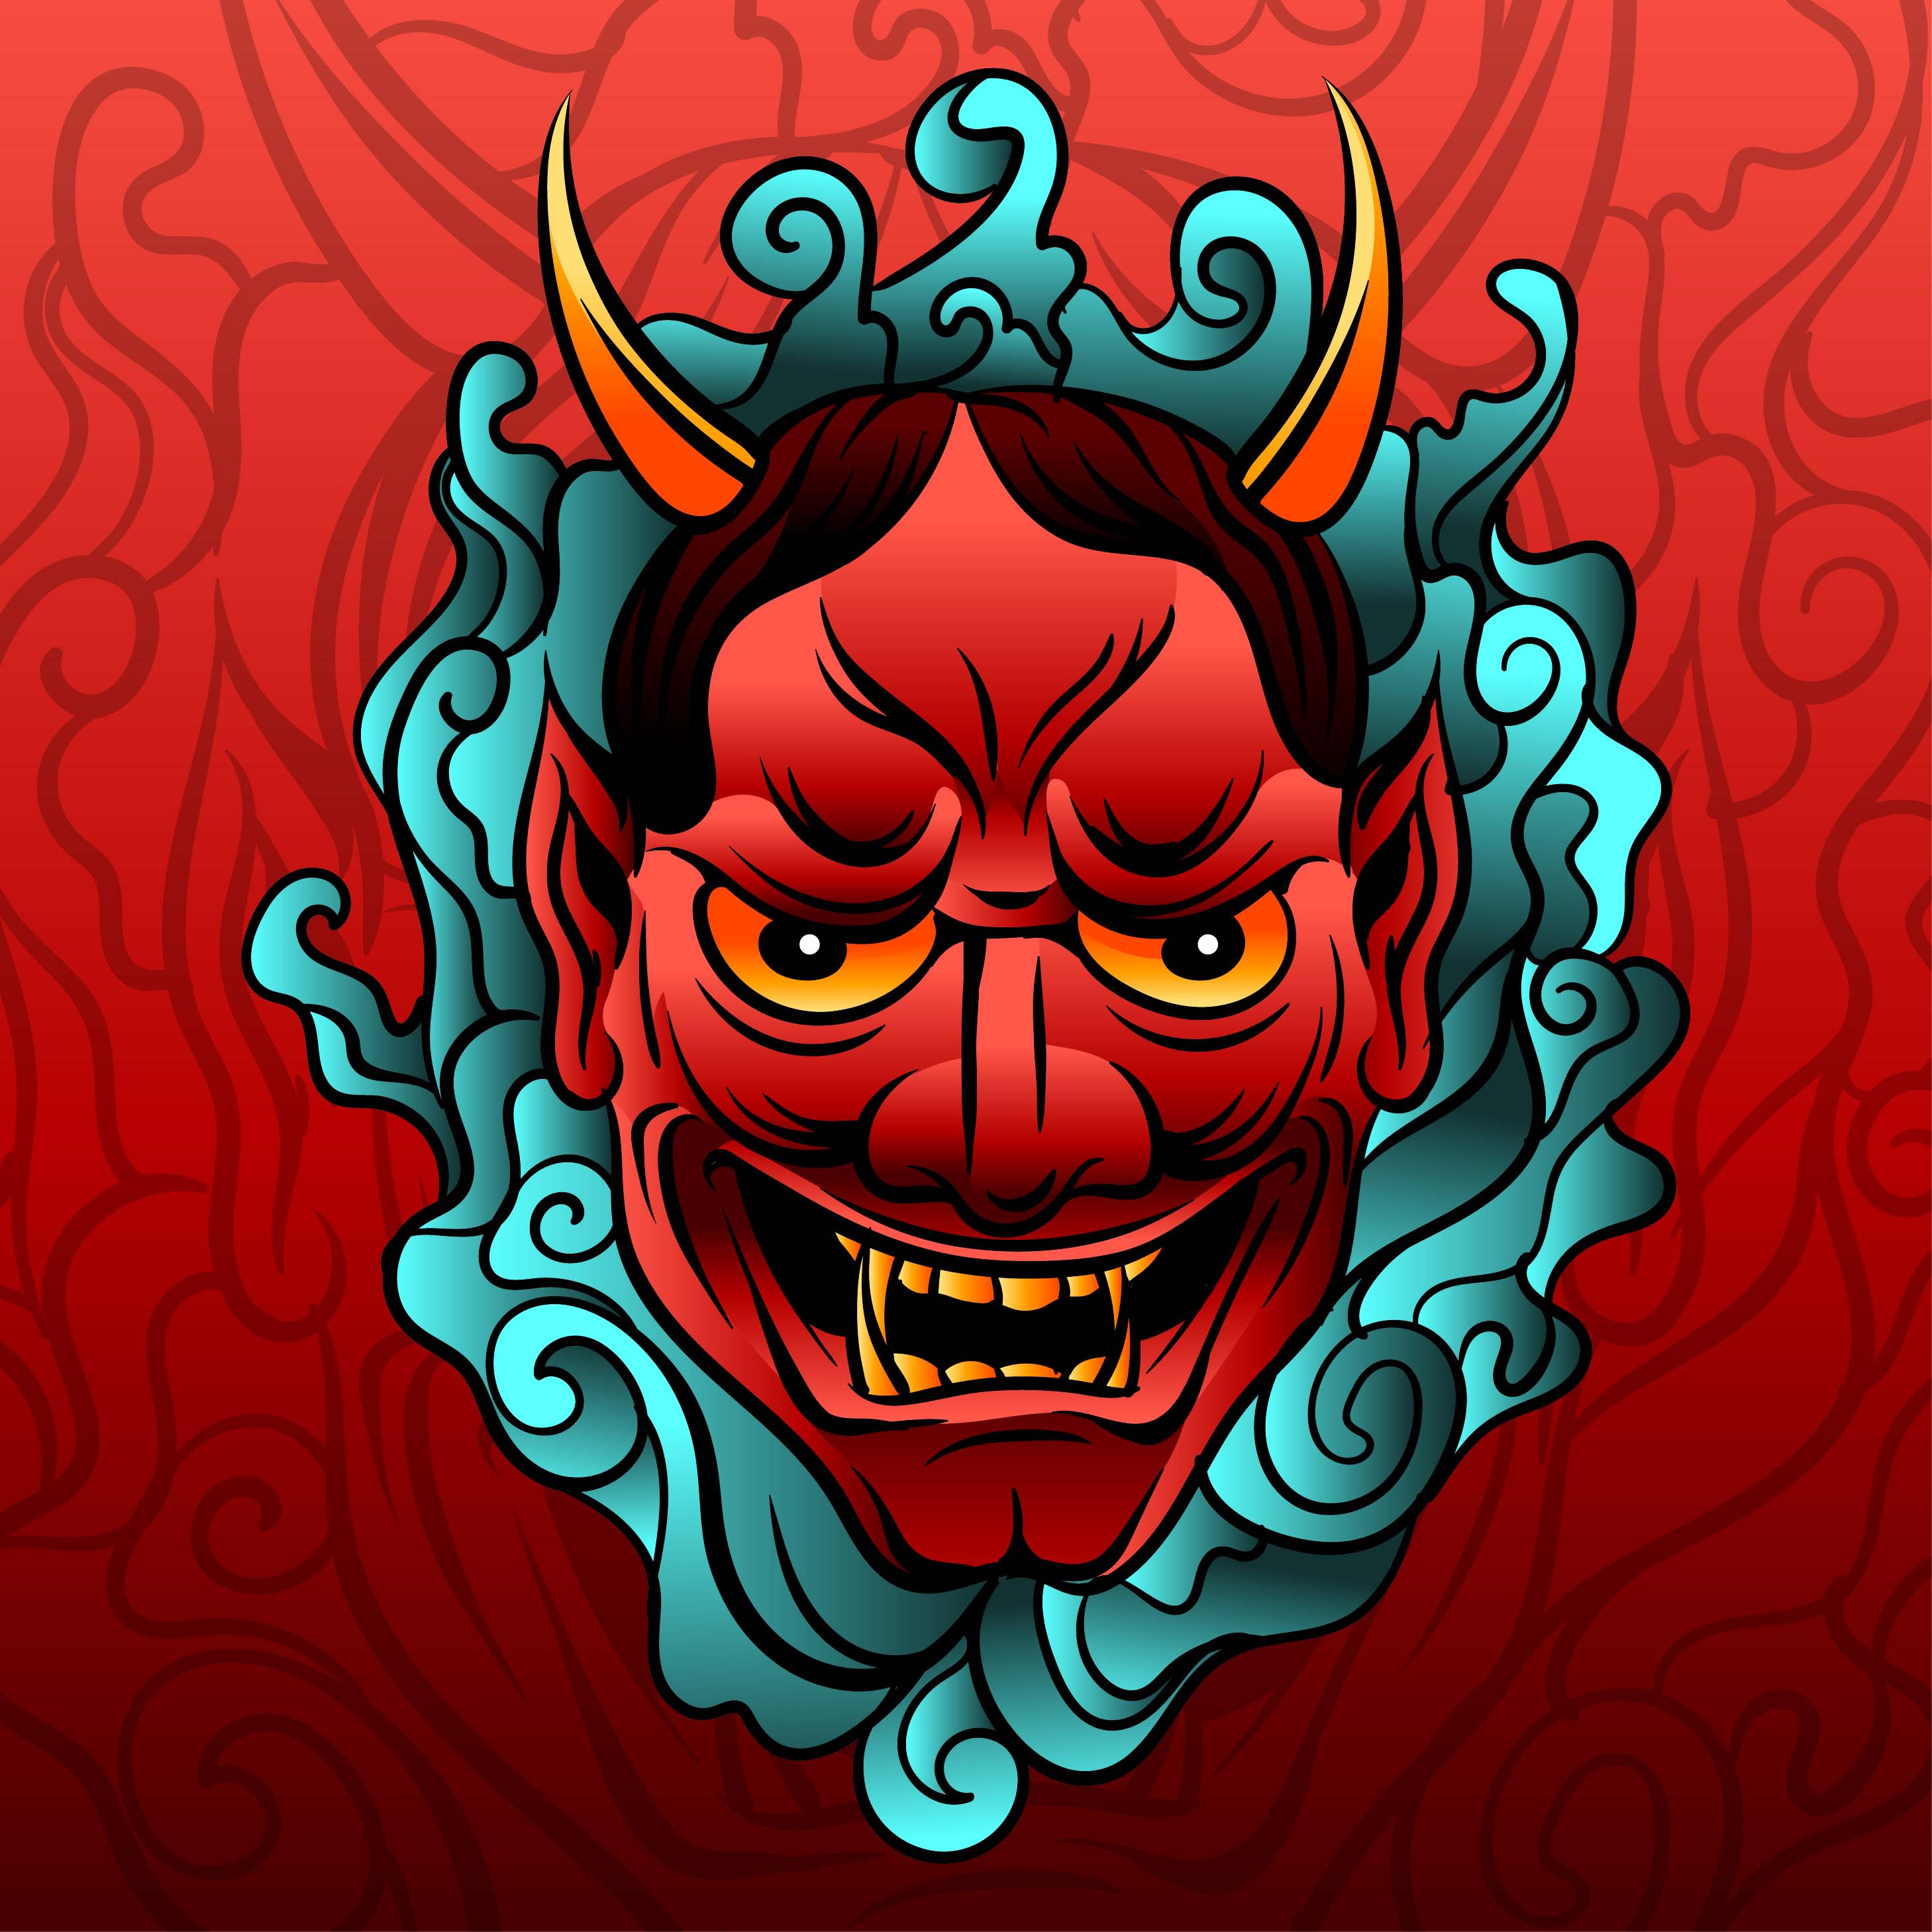 Top Free Oni Irezumi Backgrounds: Oni Mask Free Vector Art